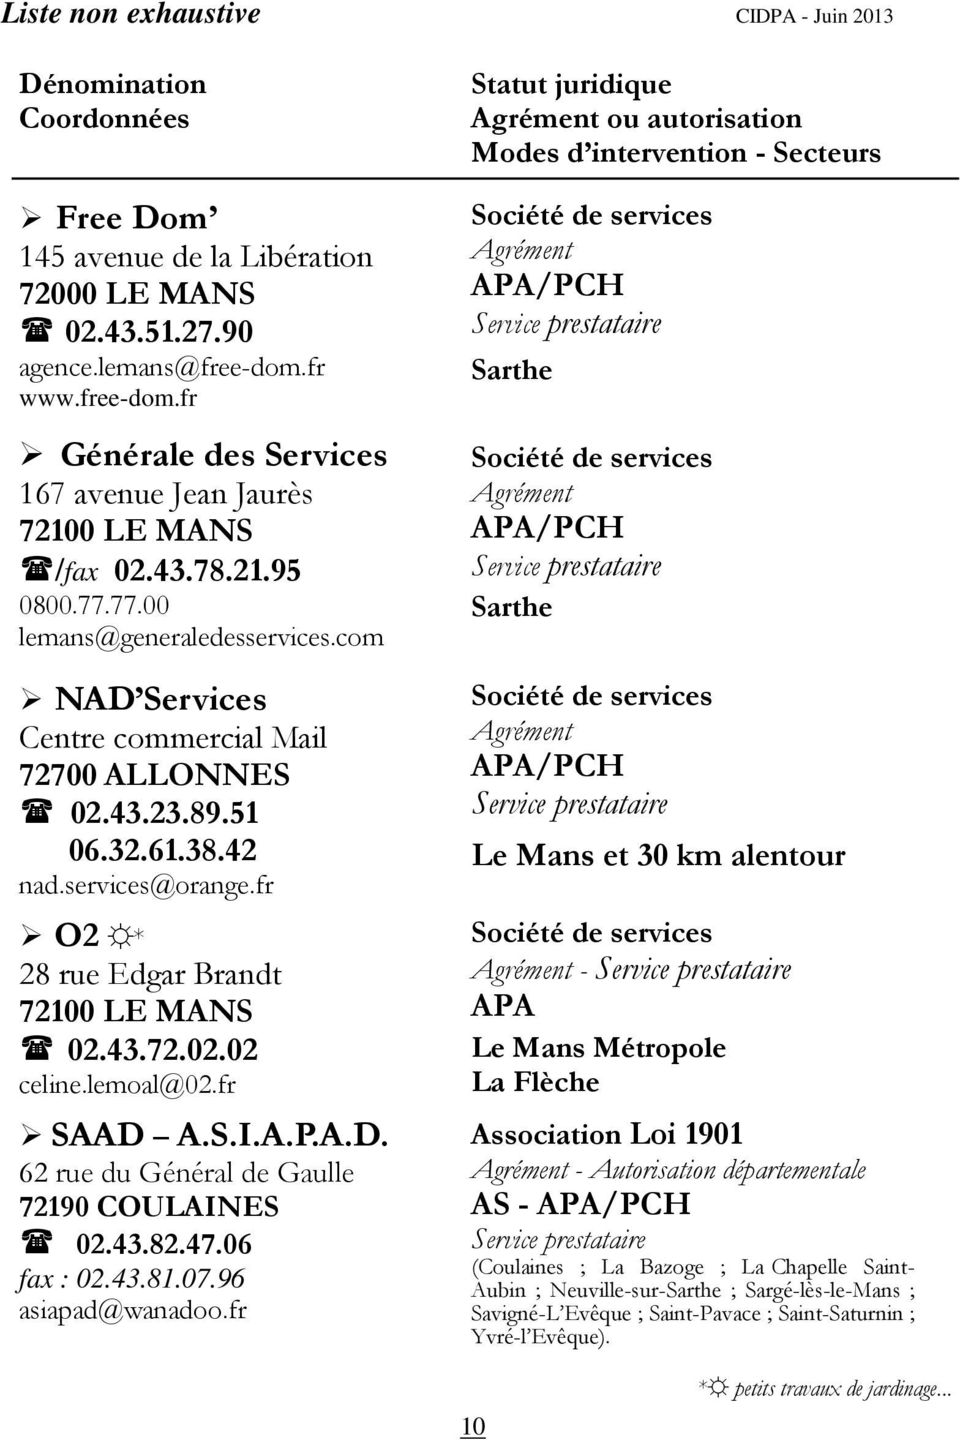 lemoal@02.fr SAAD A.S.I.A.P.A.D. 62 rue du Général de Gaulle 72190 COULAINES 02.43.82.47.06 fax : 02.43.81.07.96 asiapad@wanadoo.